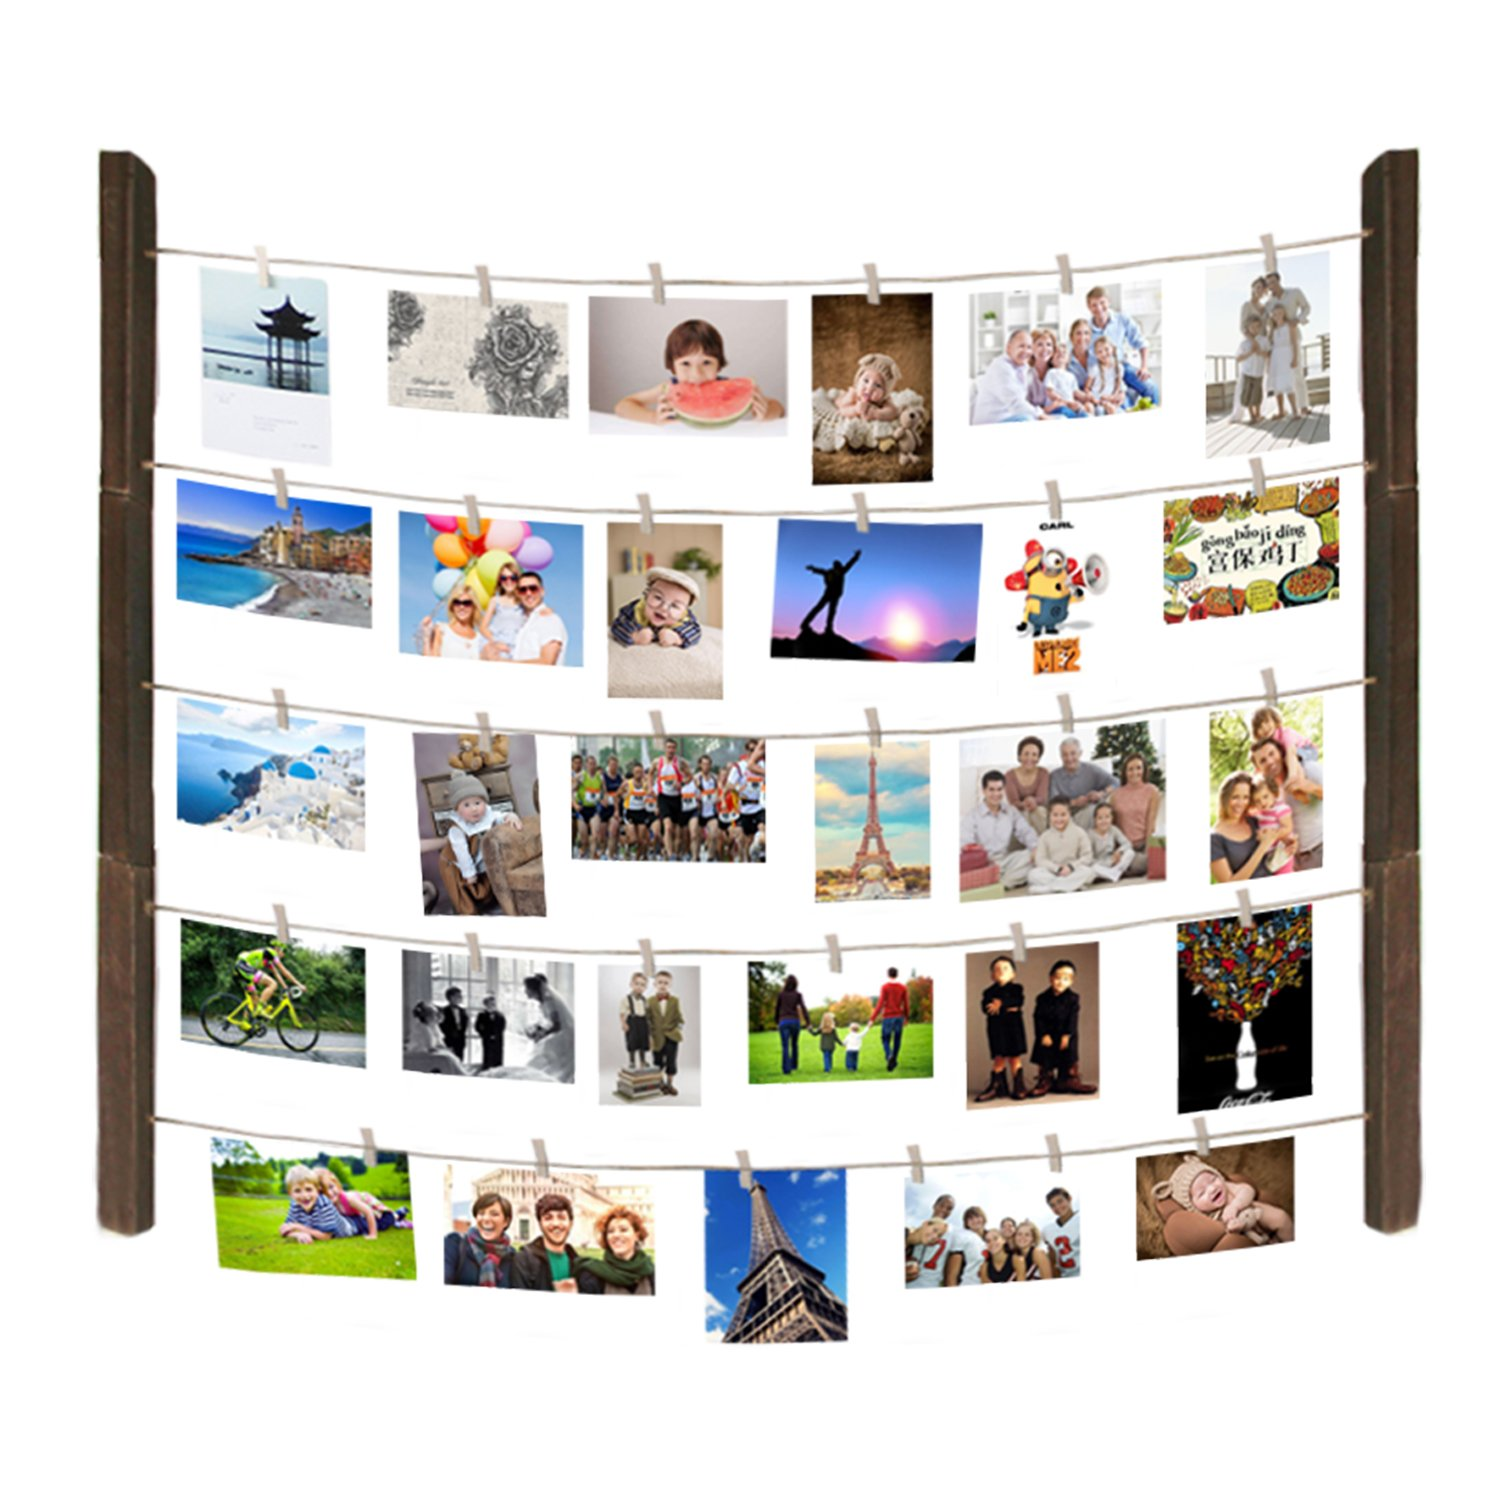 Maggift Hanging Photo Display, Hanging Pictures Holders with wooden Clips, Mounting Hardwares Included (Wood) by MAGGIFT